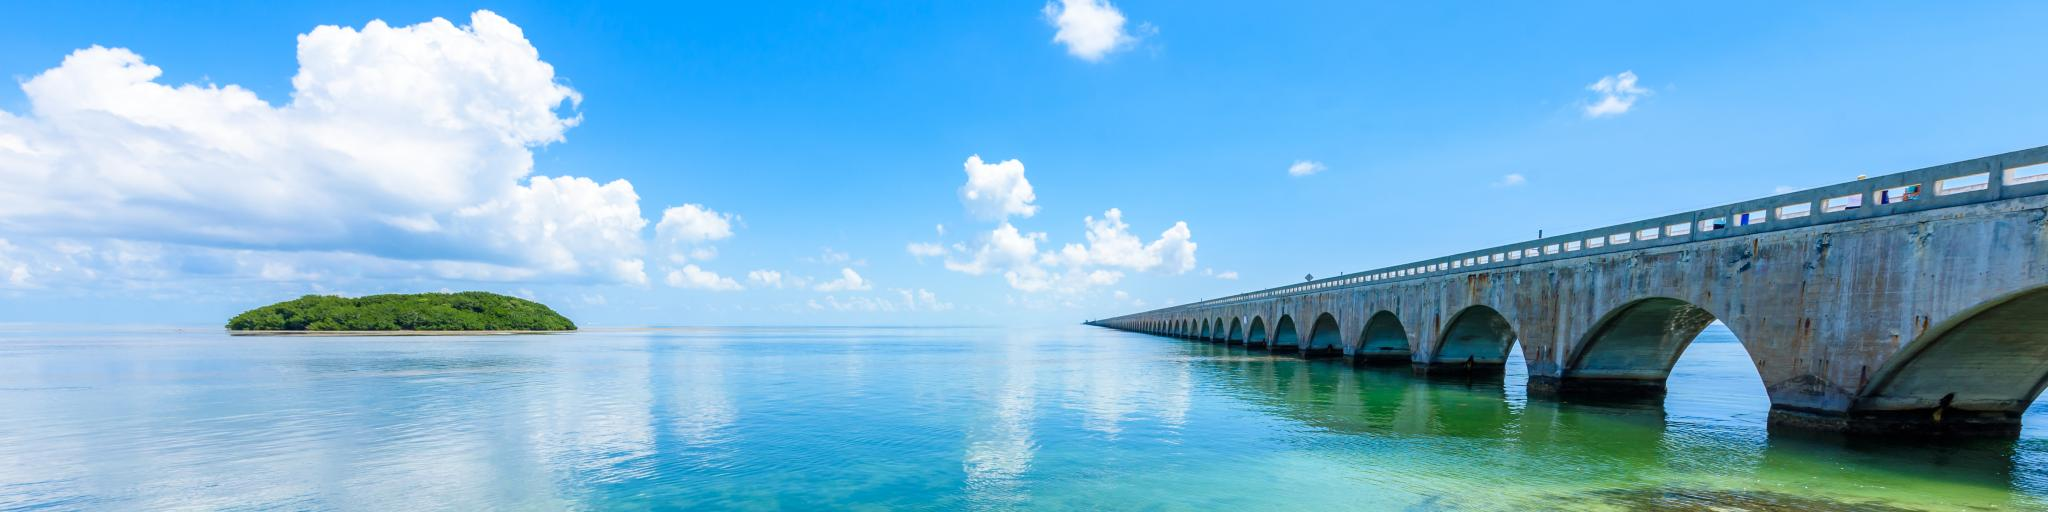 Seven Mile Bridge leading to Florida Keys from mainland Florida.